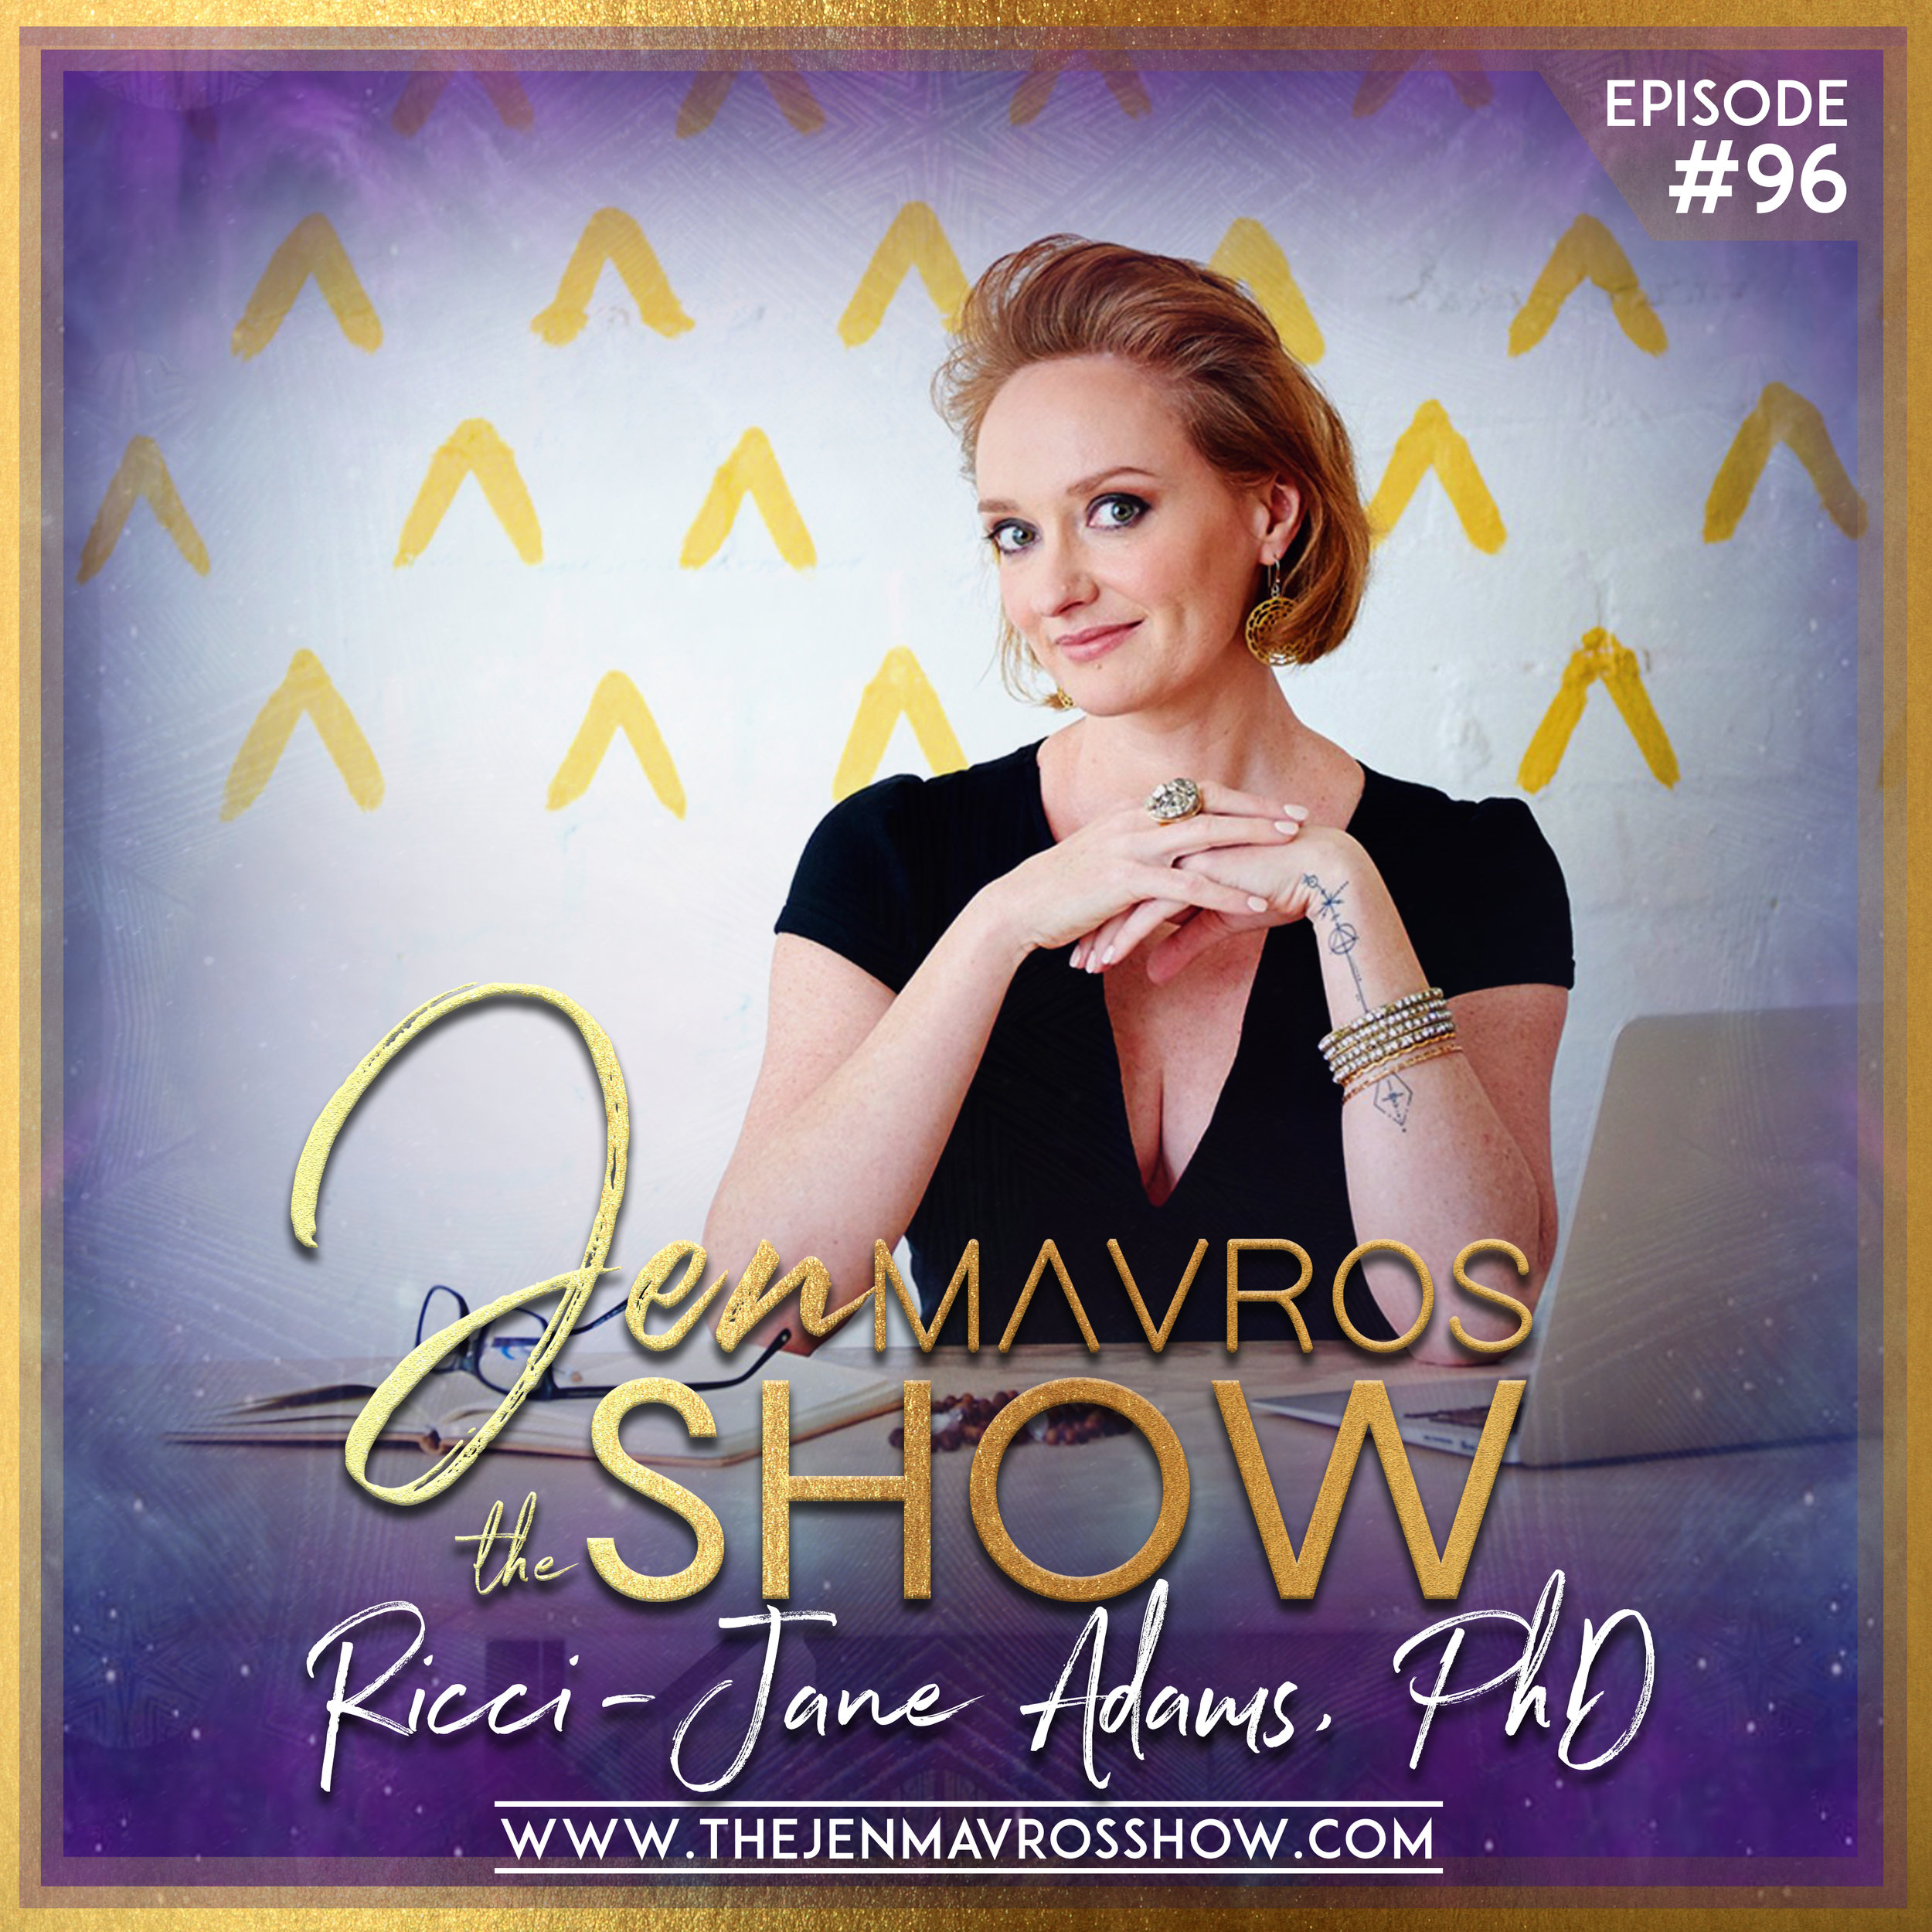 Dr. Ricci-Jane Adams - Being Spiritually Fierce & Changing The Convo On Intuition